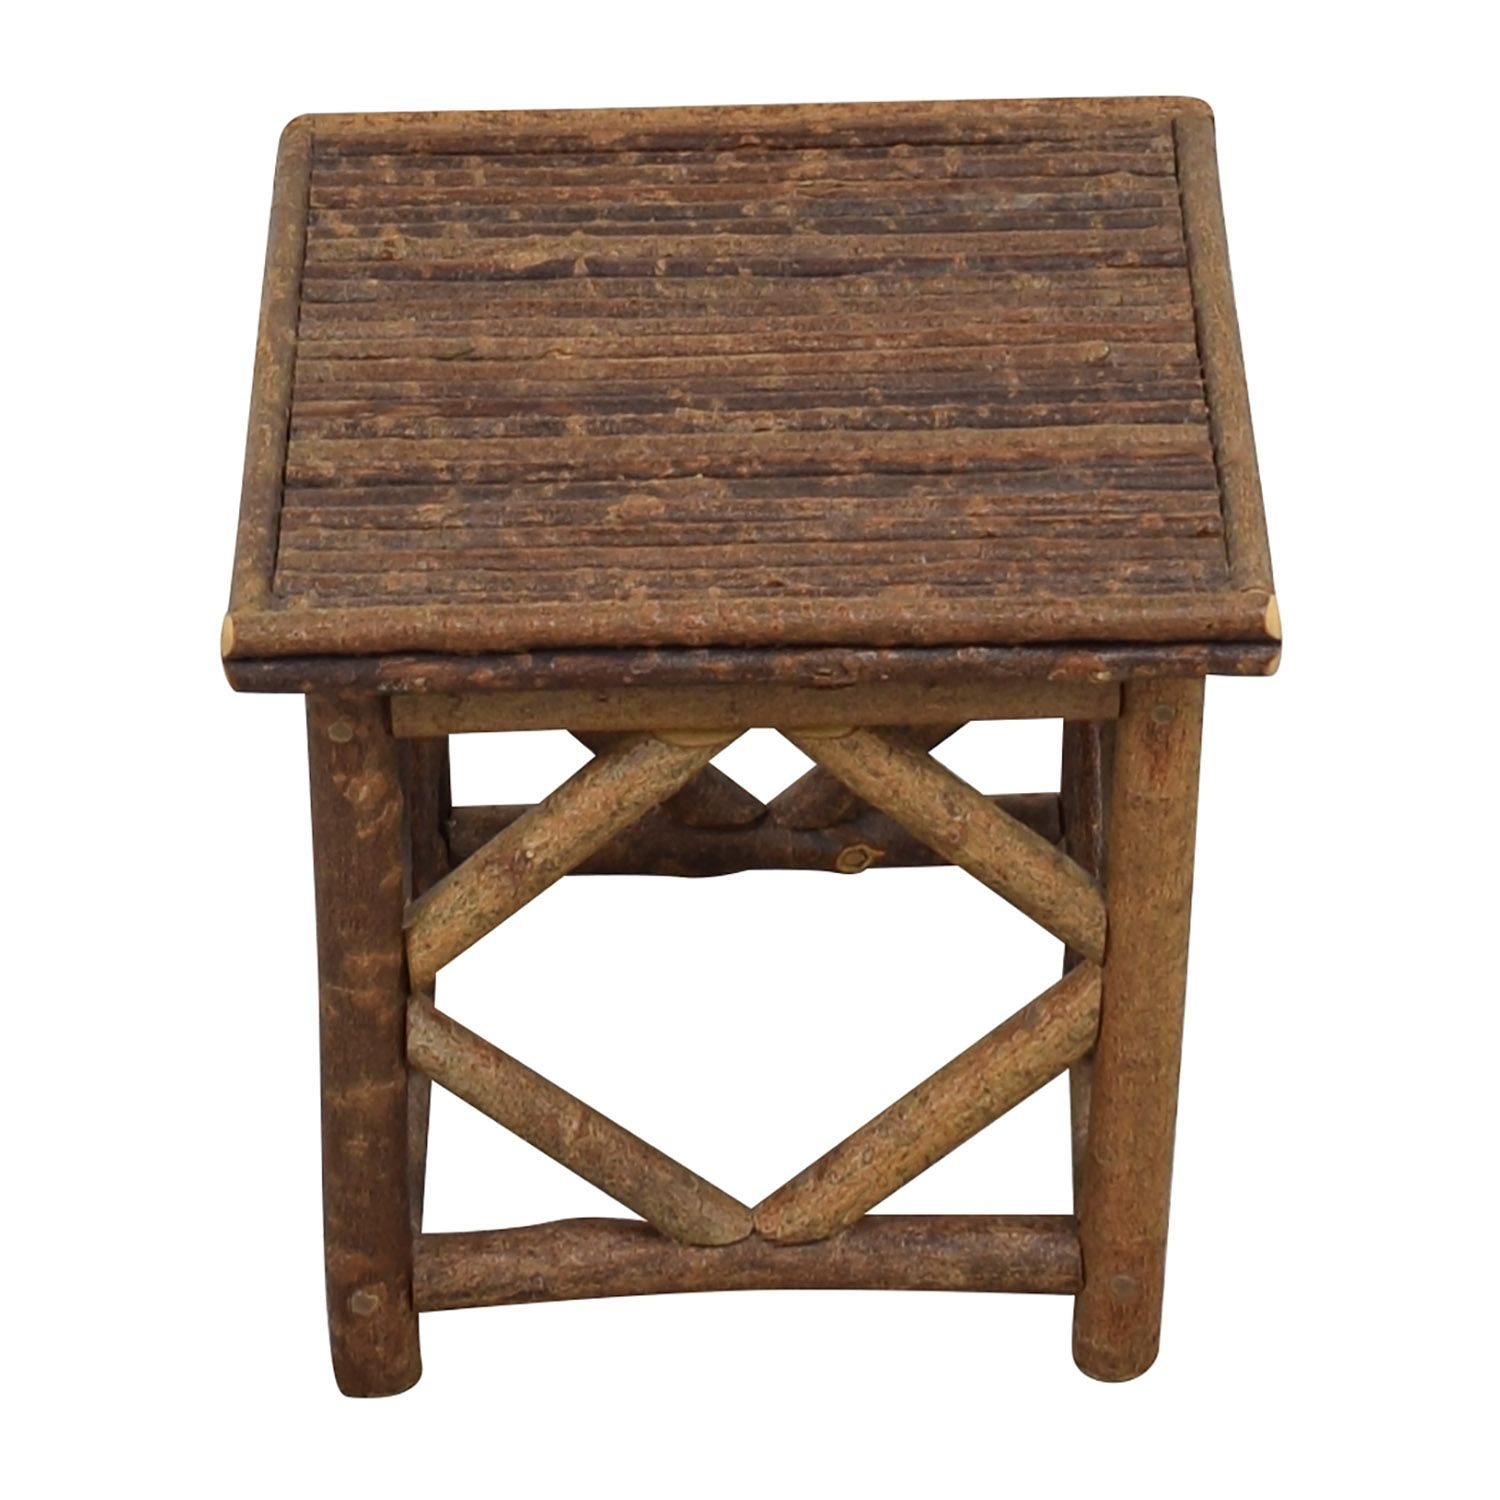 La Lune Collection Rustic End Table Rustic End Tables End